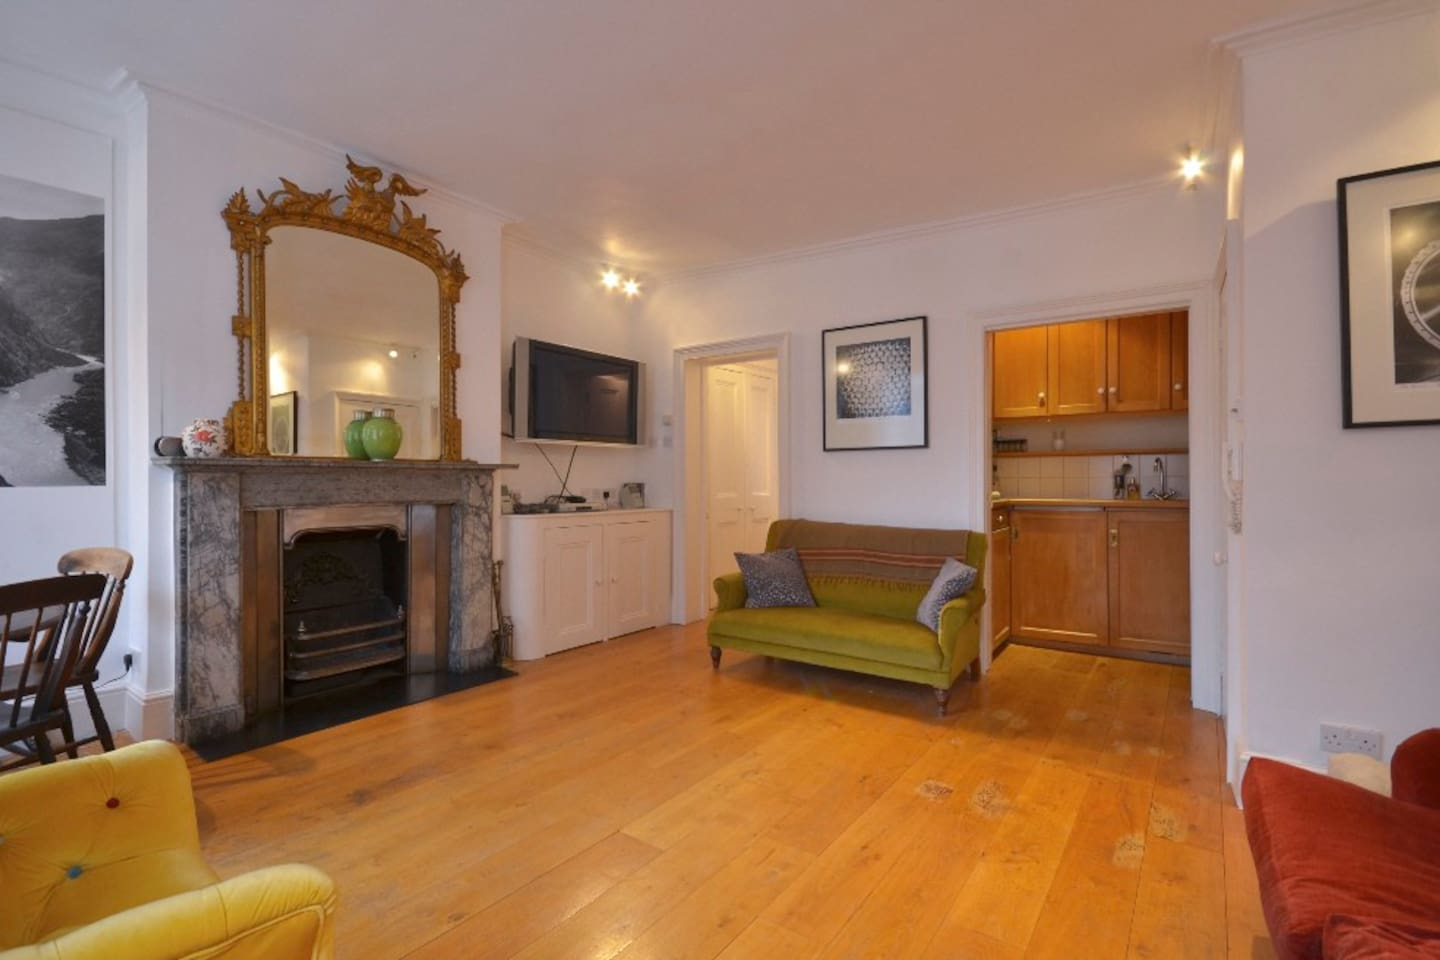 Charming apartment in Covent Garden - Apartments for Rent in London ...